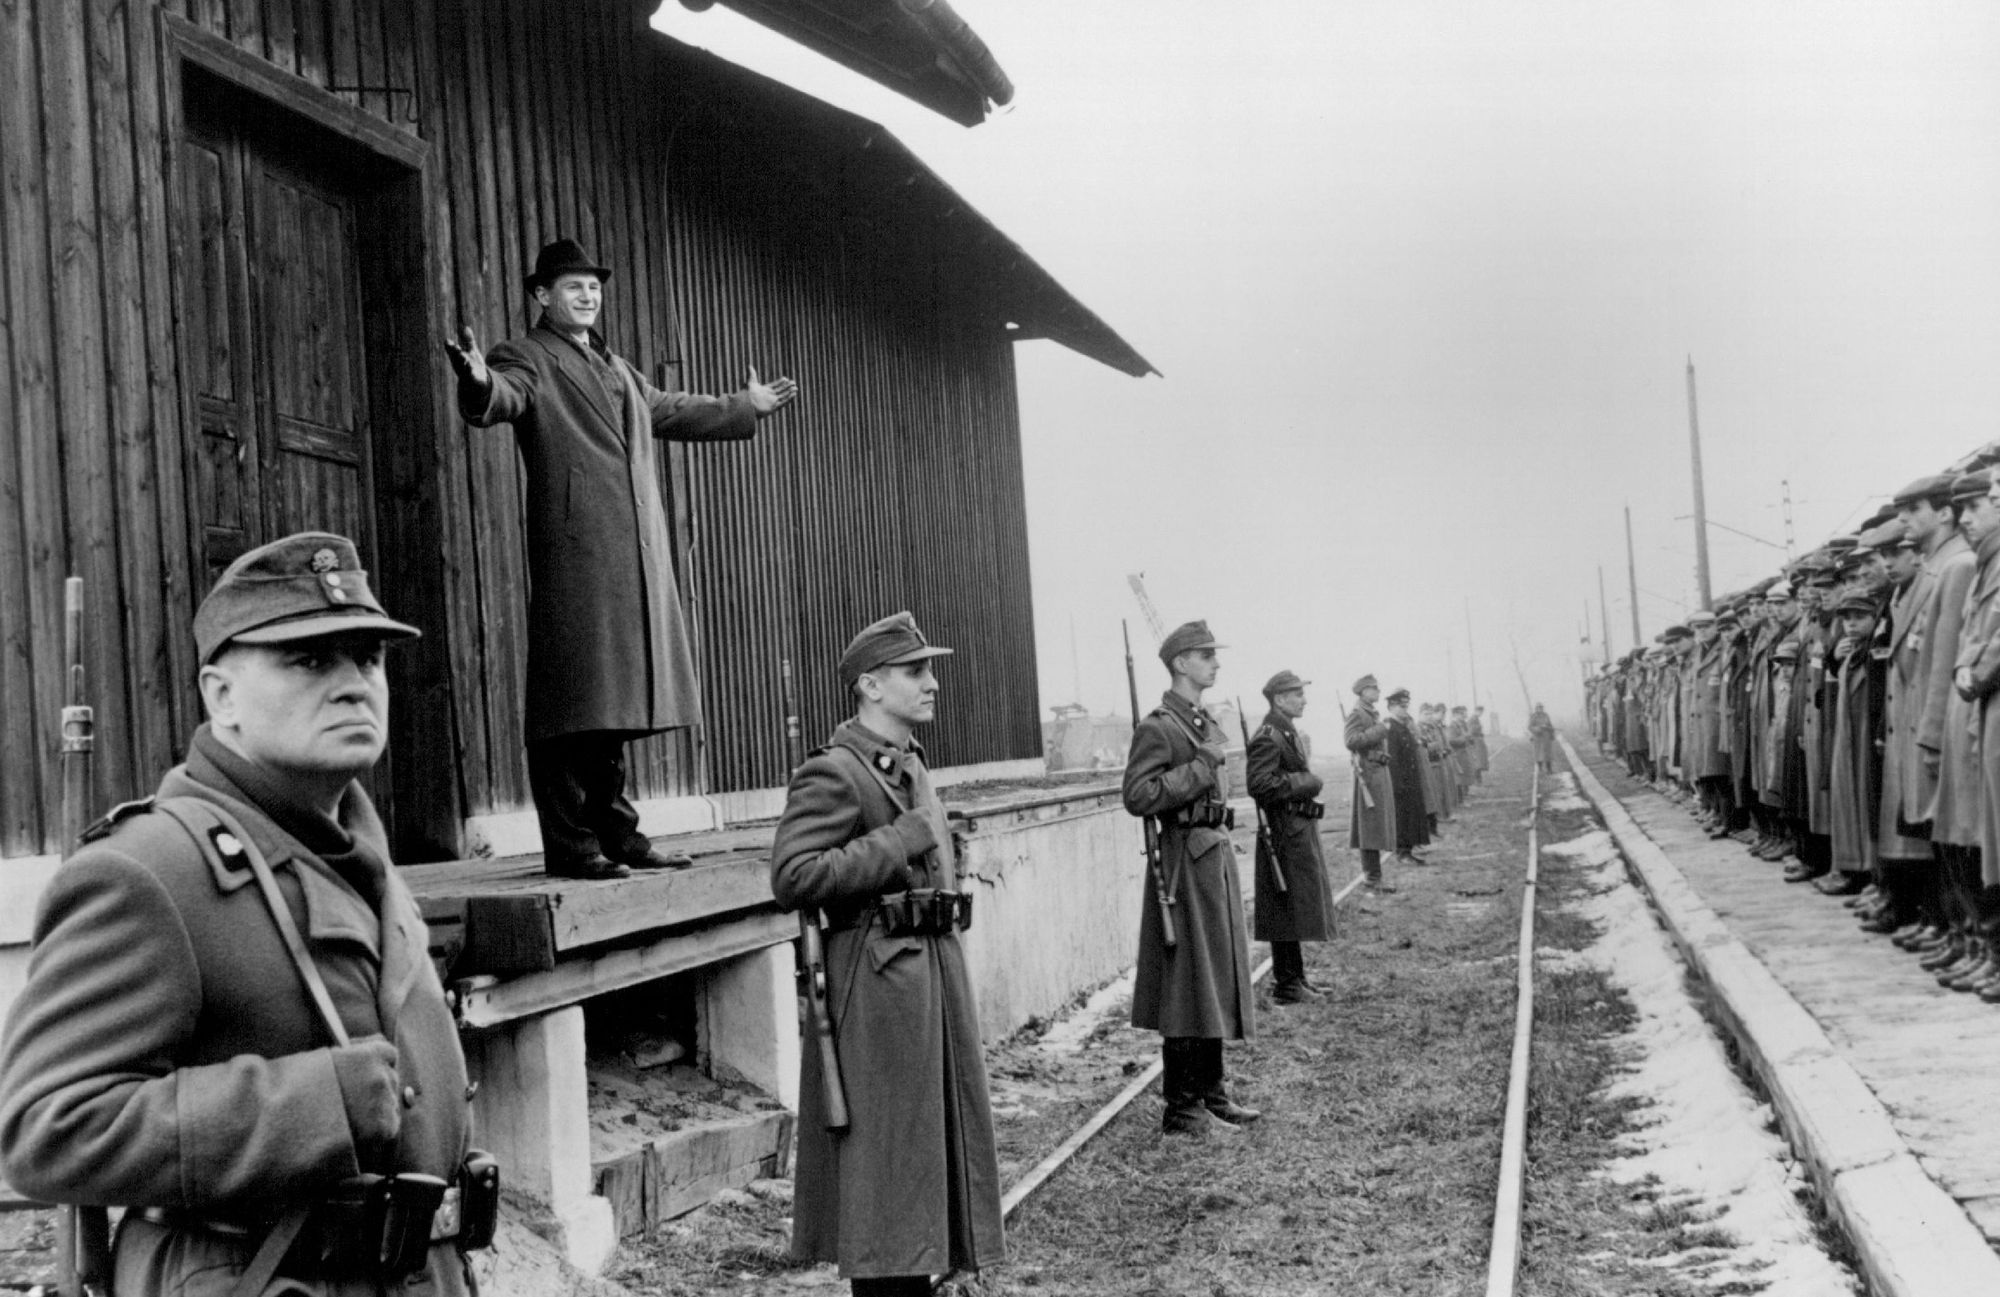 In 'Schindler's List,' German industrialist Oskar Schindler (Liam Neeson, on platform) welcomes his workers to the safety of his new factory at Brinnlitz.